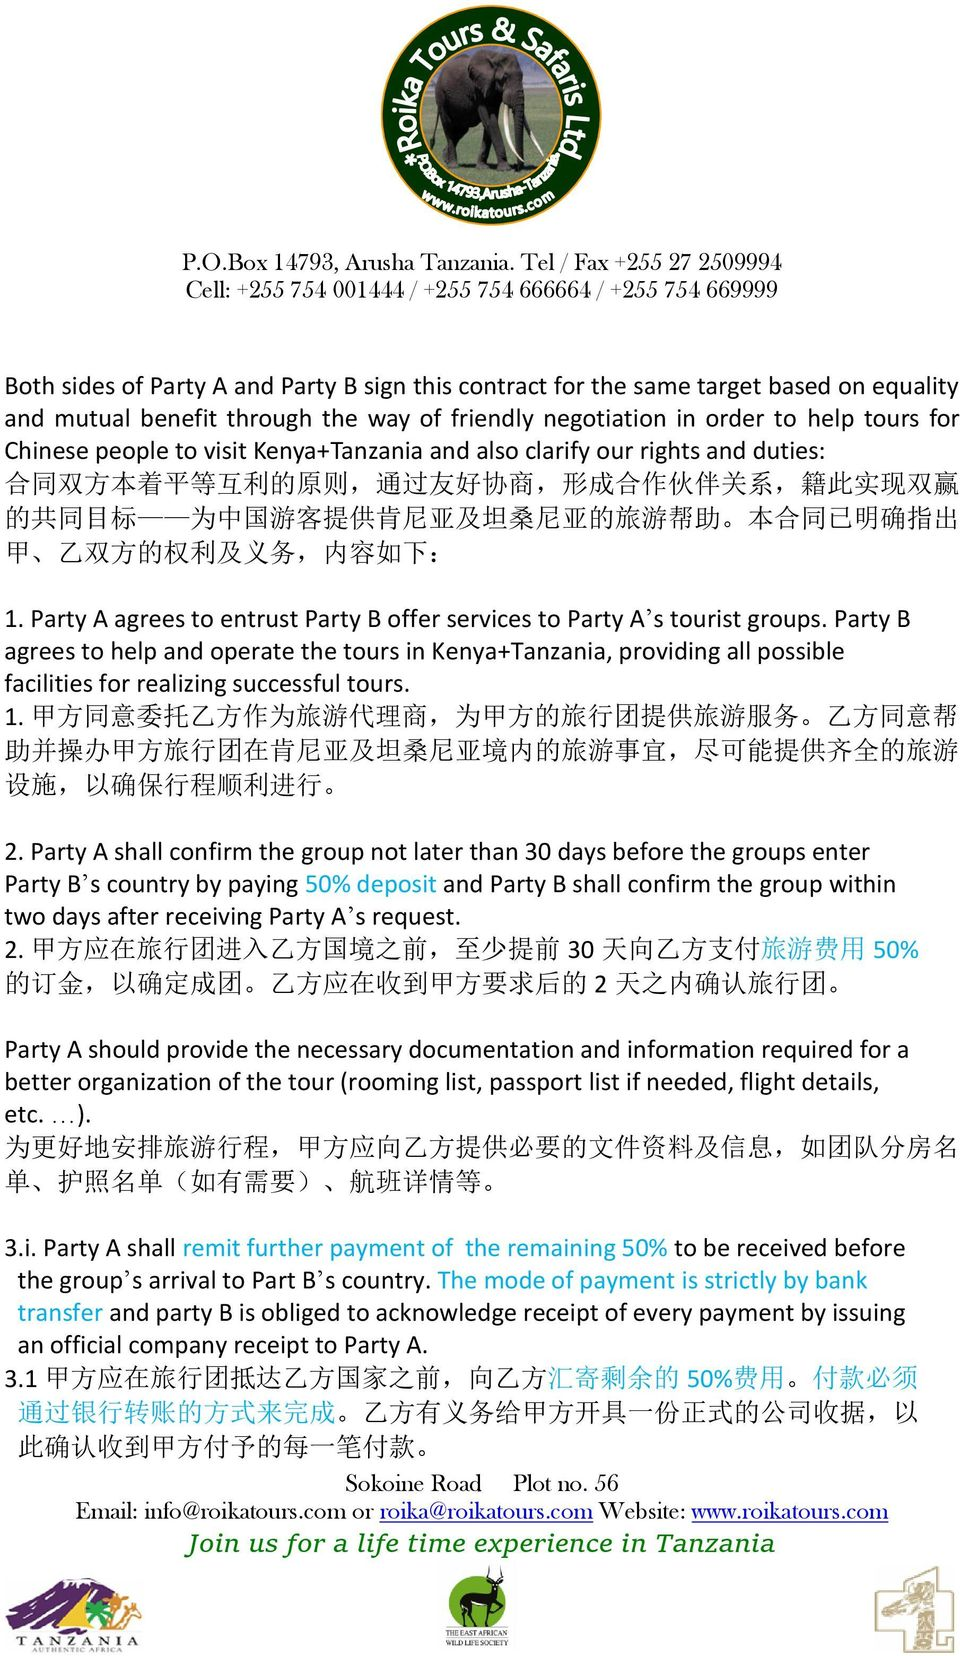 双 方 的 权 利 及 义 务, 内 容 如 下 : 1. Party A agrees to entrust Party B offer services to Party A s tourist groups.